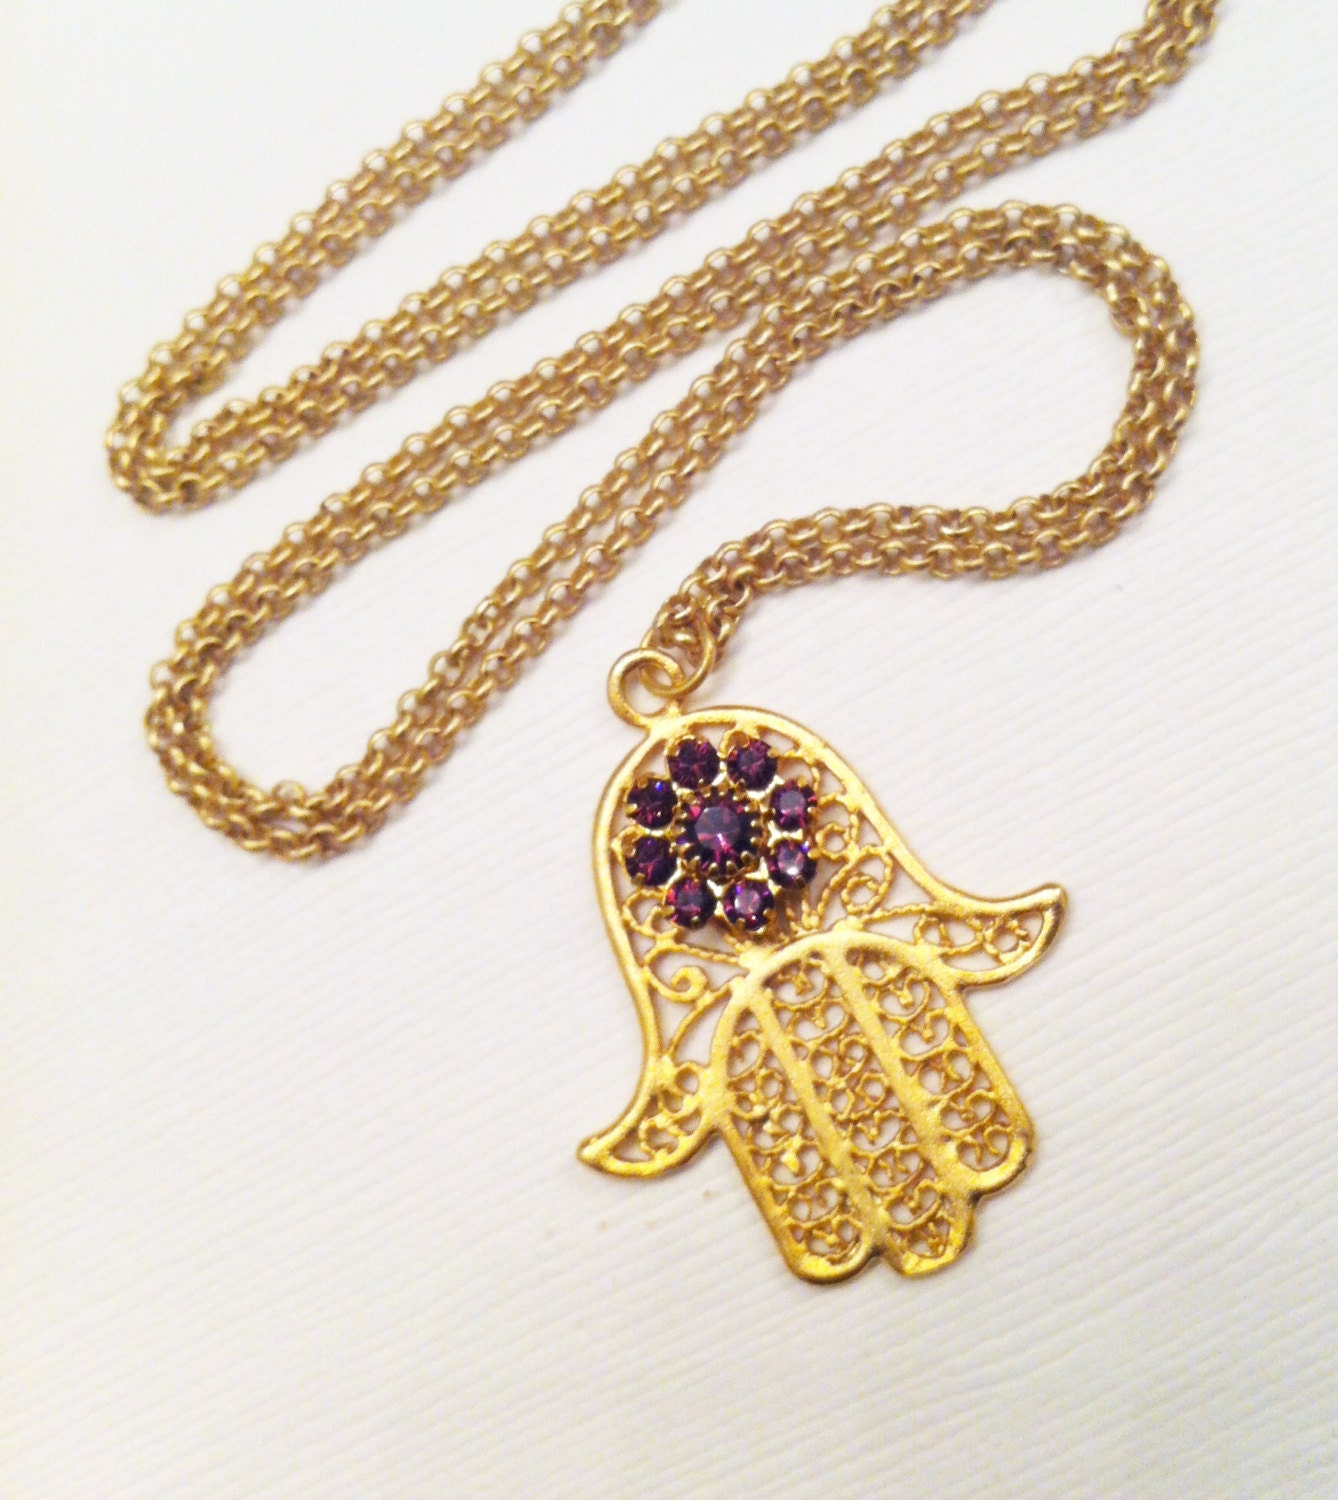 Necklace Hamsa Hand 18k Matte Gold Pendant and Chain Amethyst